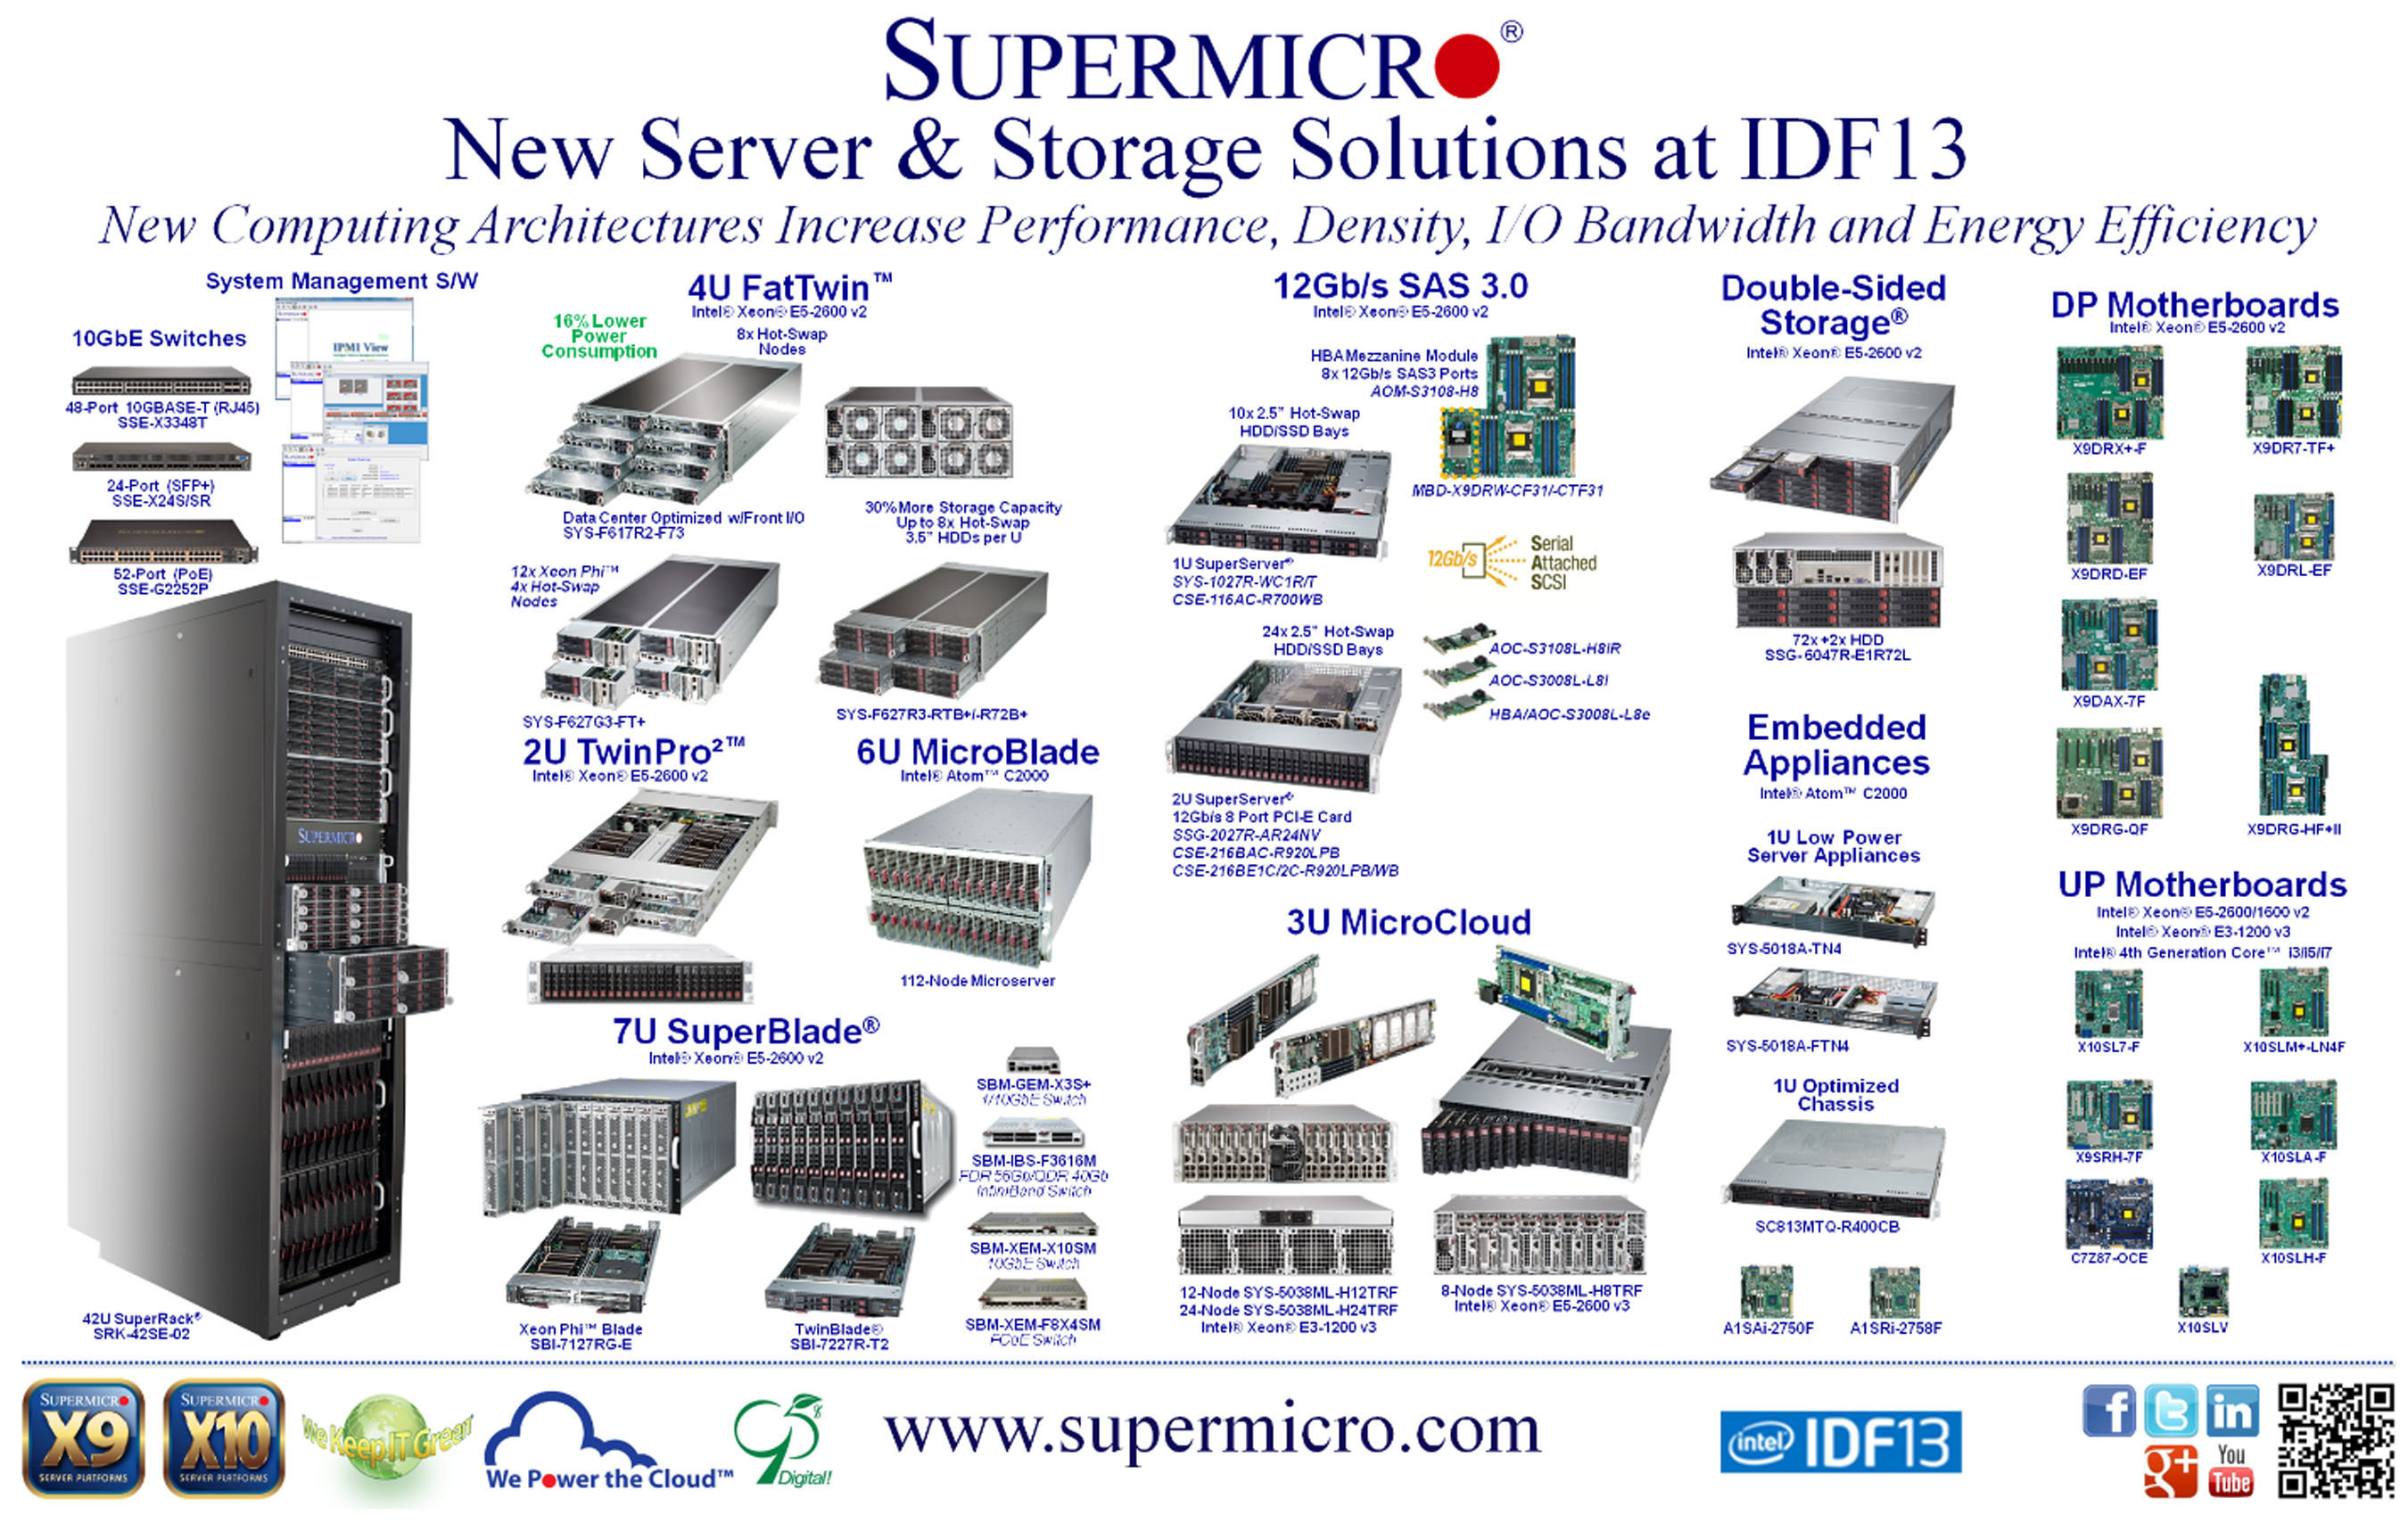 Supermicro(R) Introduces New Server and Storage Solutions at IDF13.  (PRNewsFoto/Super Micro Computer, Inc.)